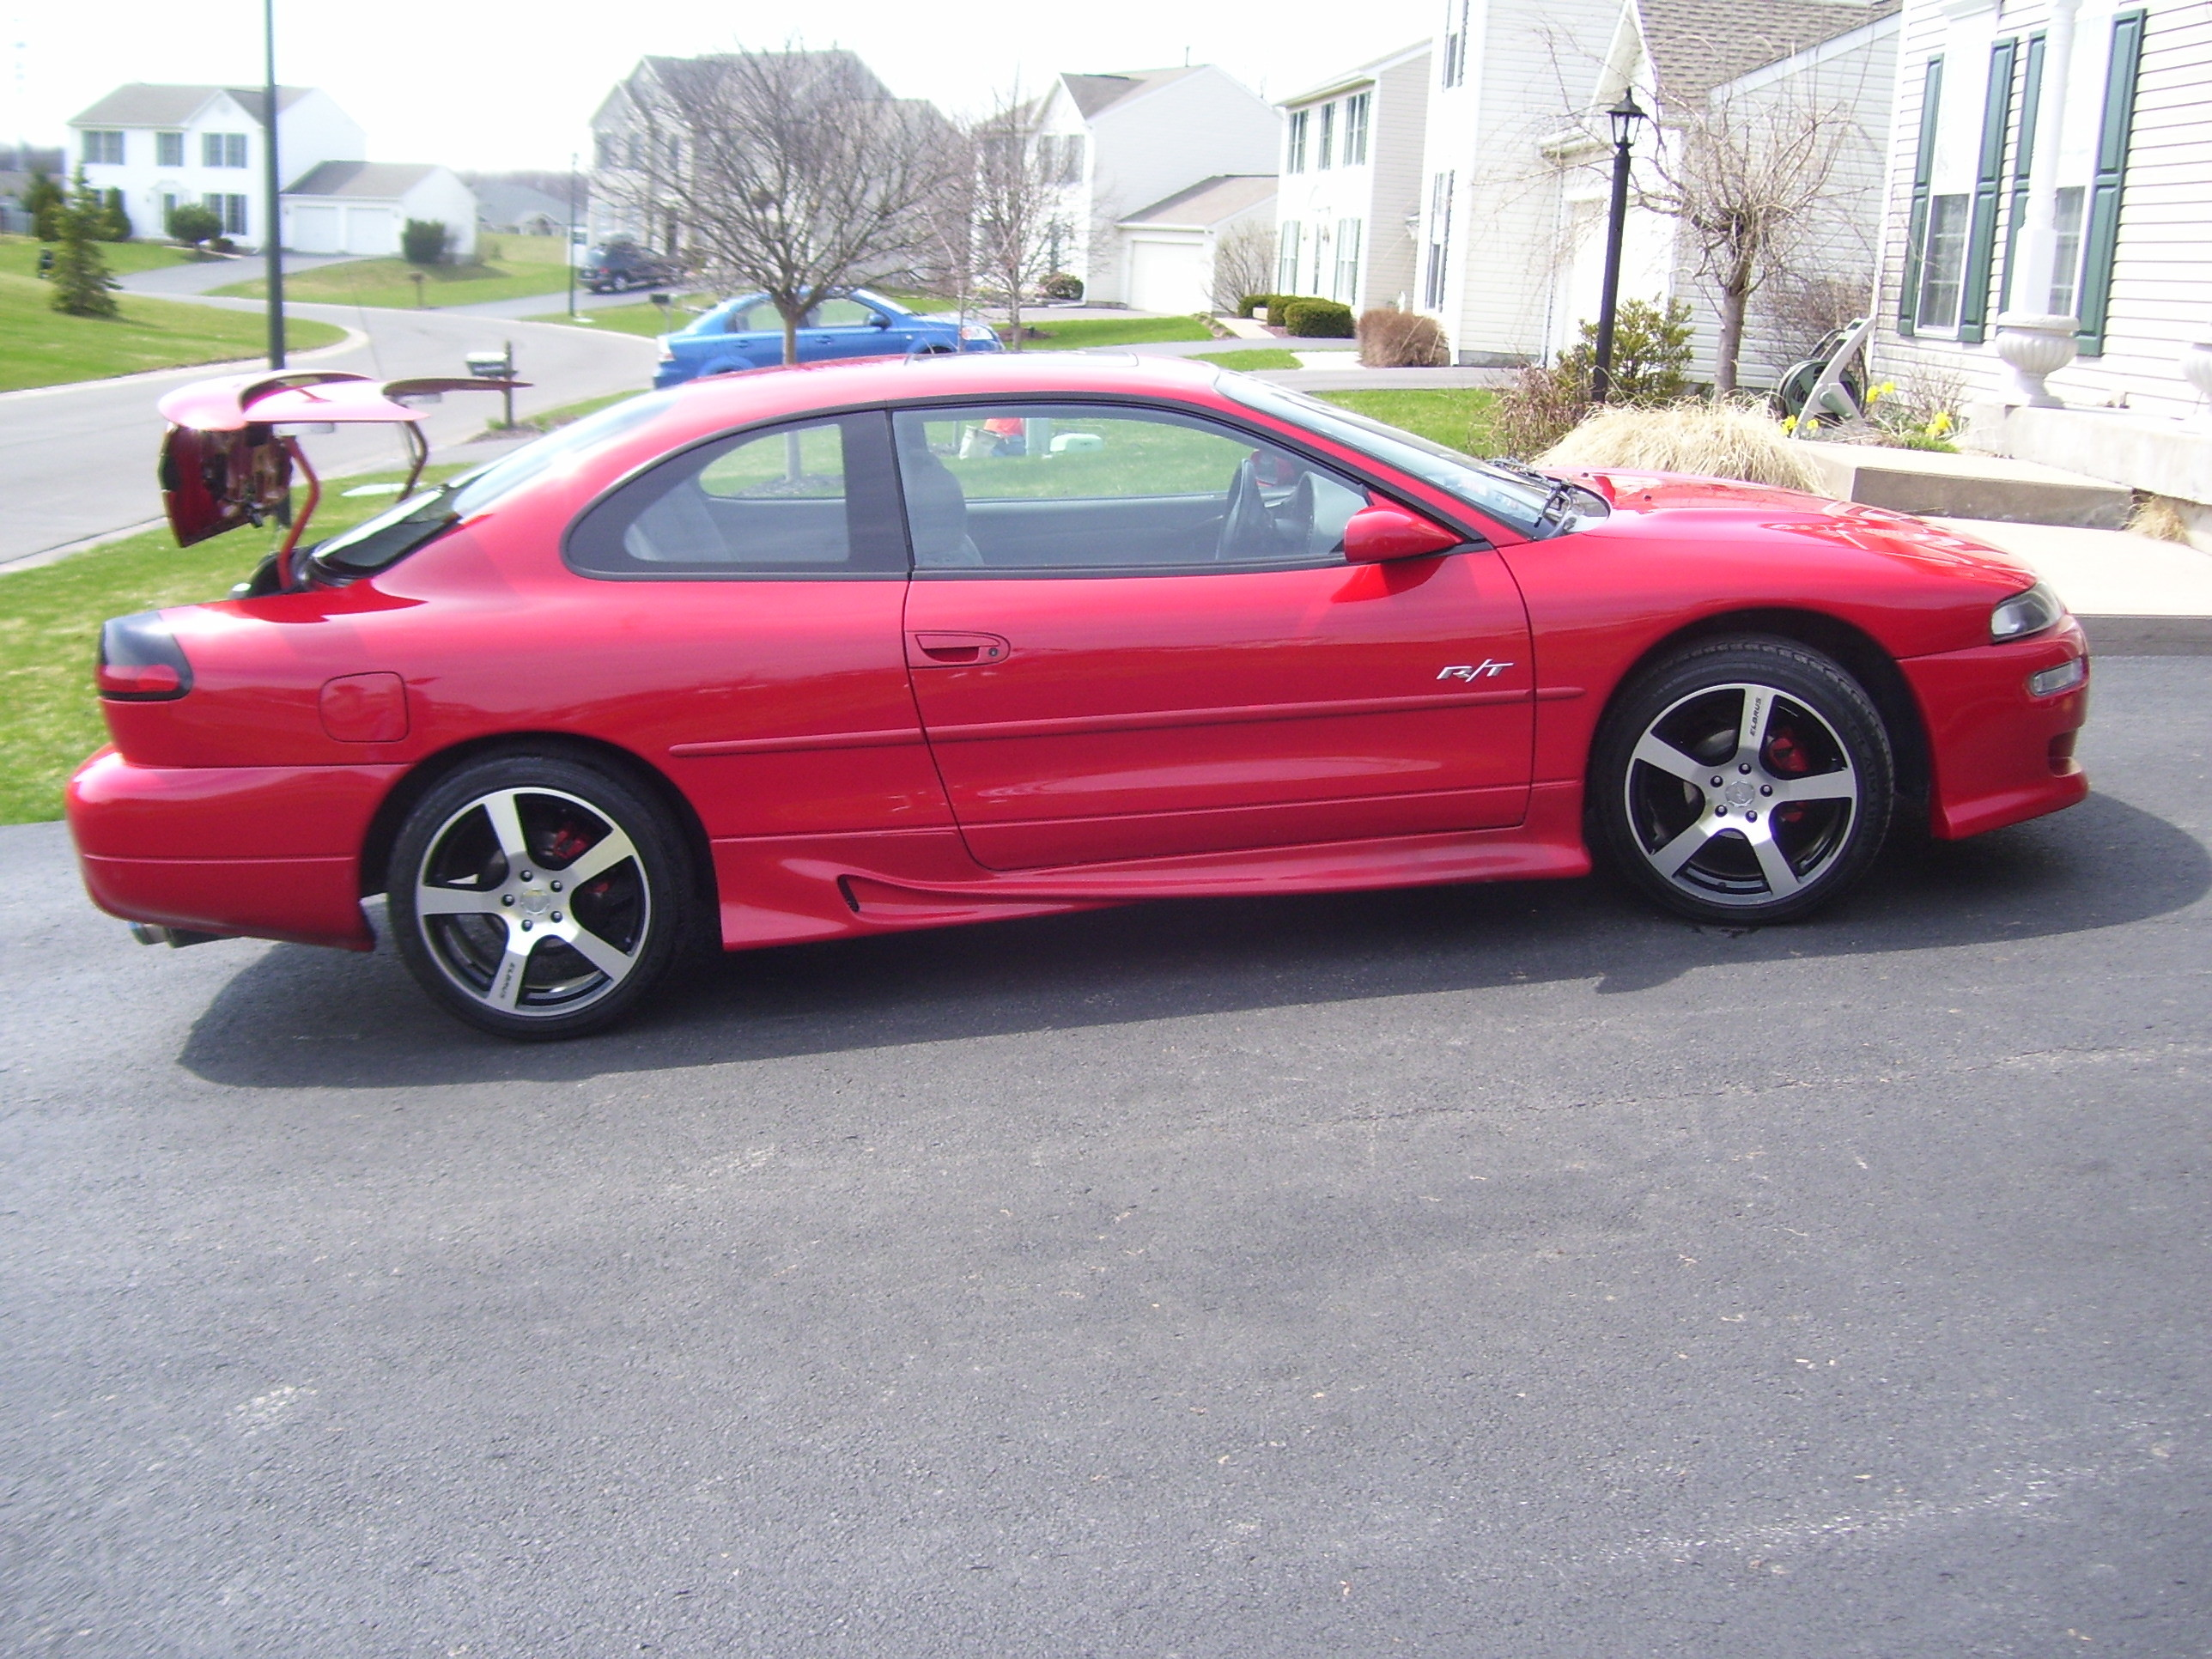 scalzo16 39 s 1999 dodge avenger in syracuse ny. Black Bedroom Furniture Sets. Home Design Ideas